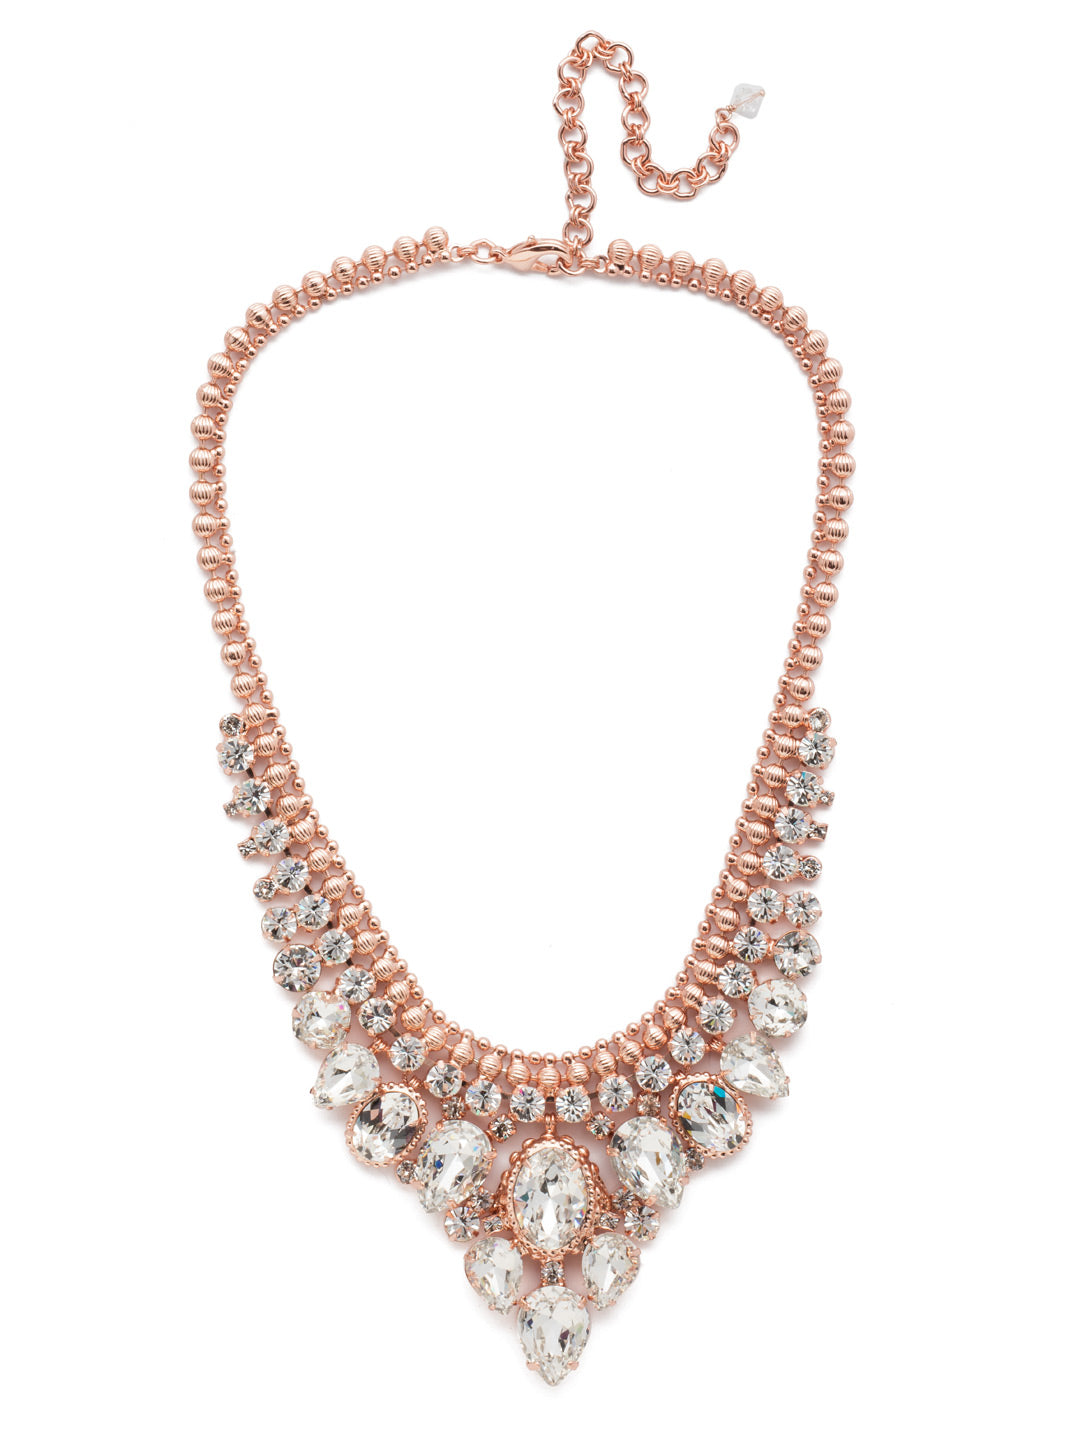 Protea Statement Necklace - NDQ3RGCRY